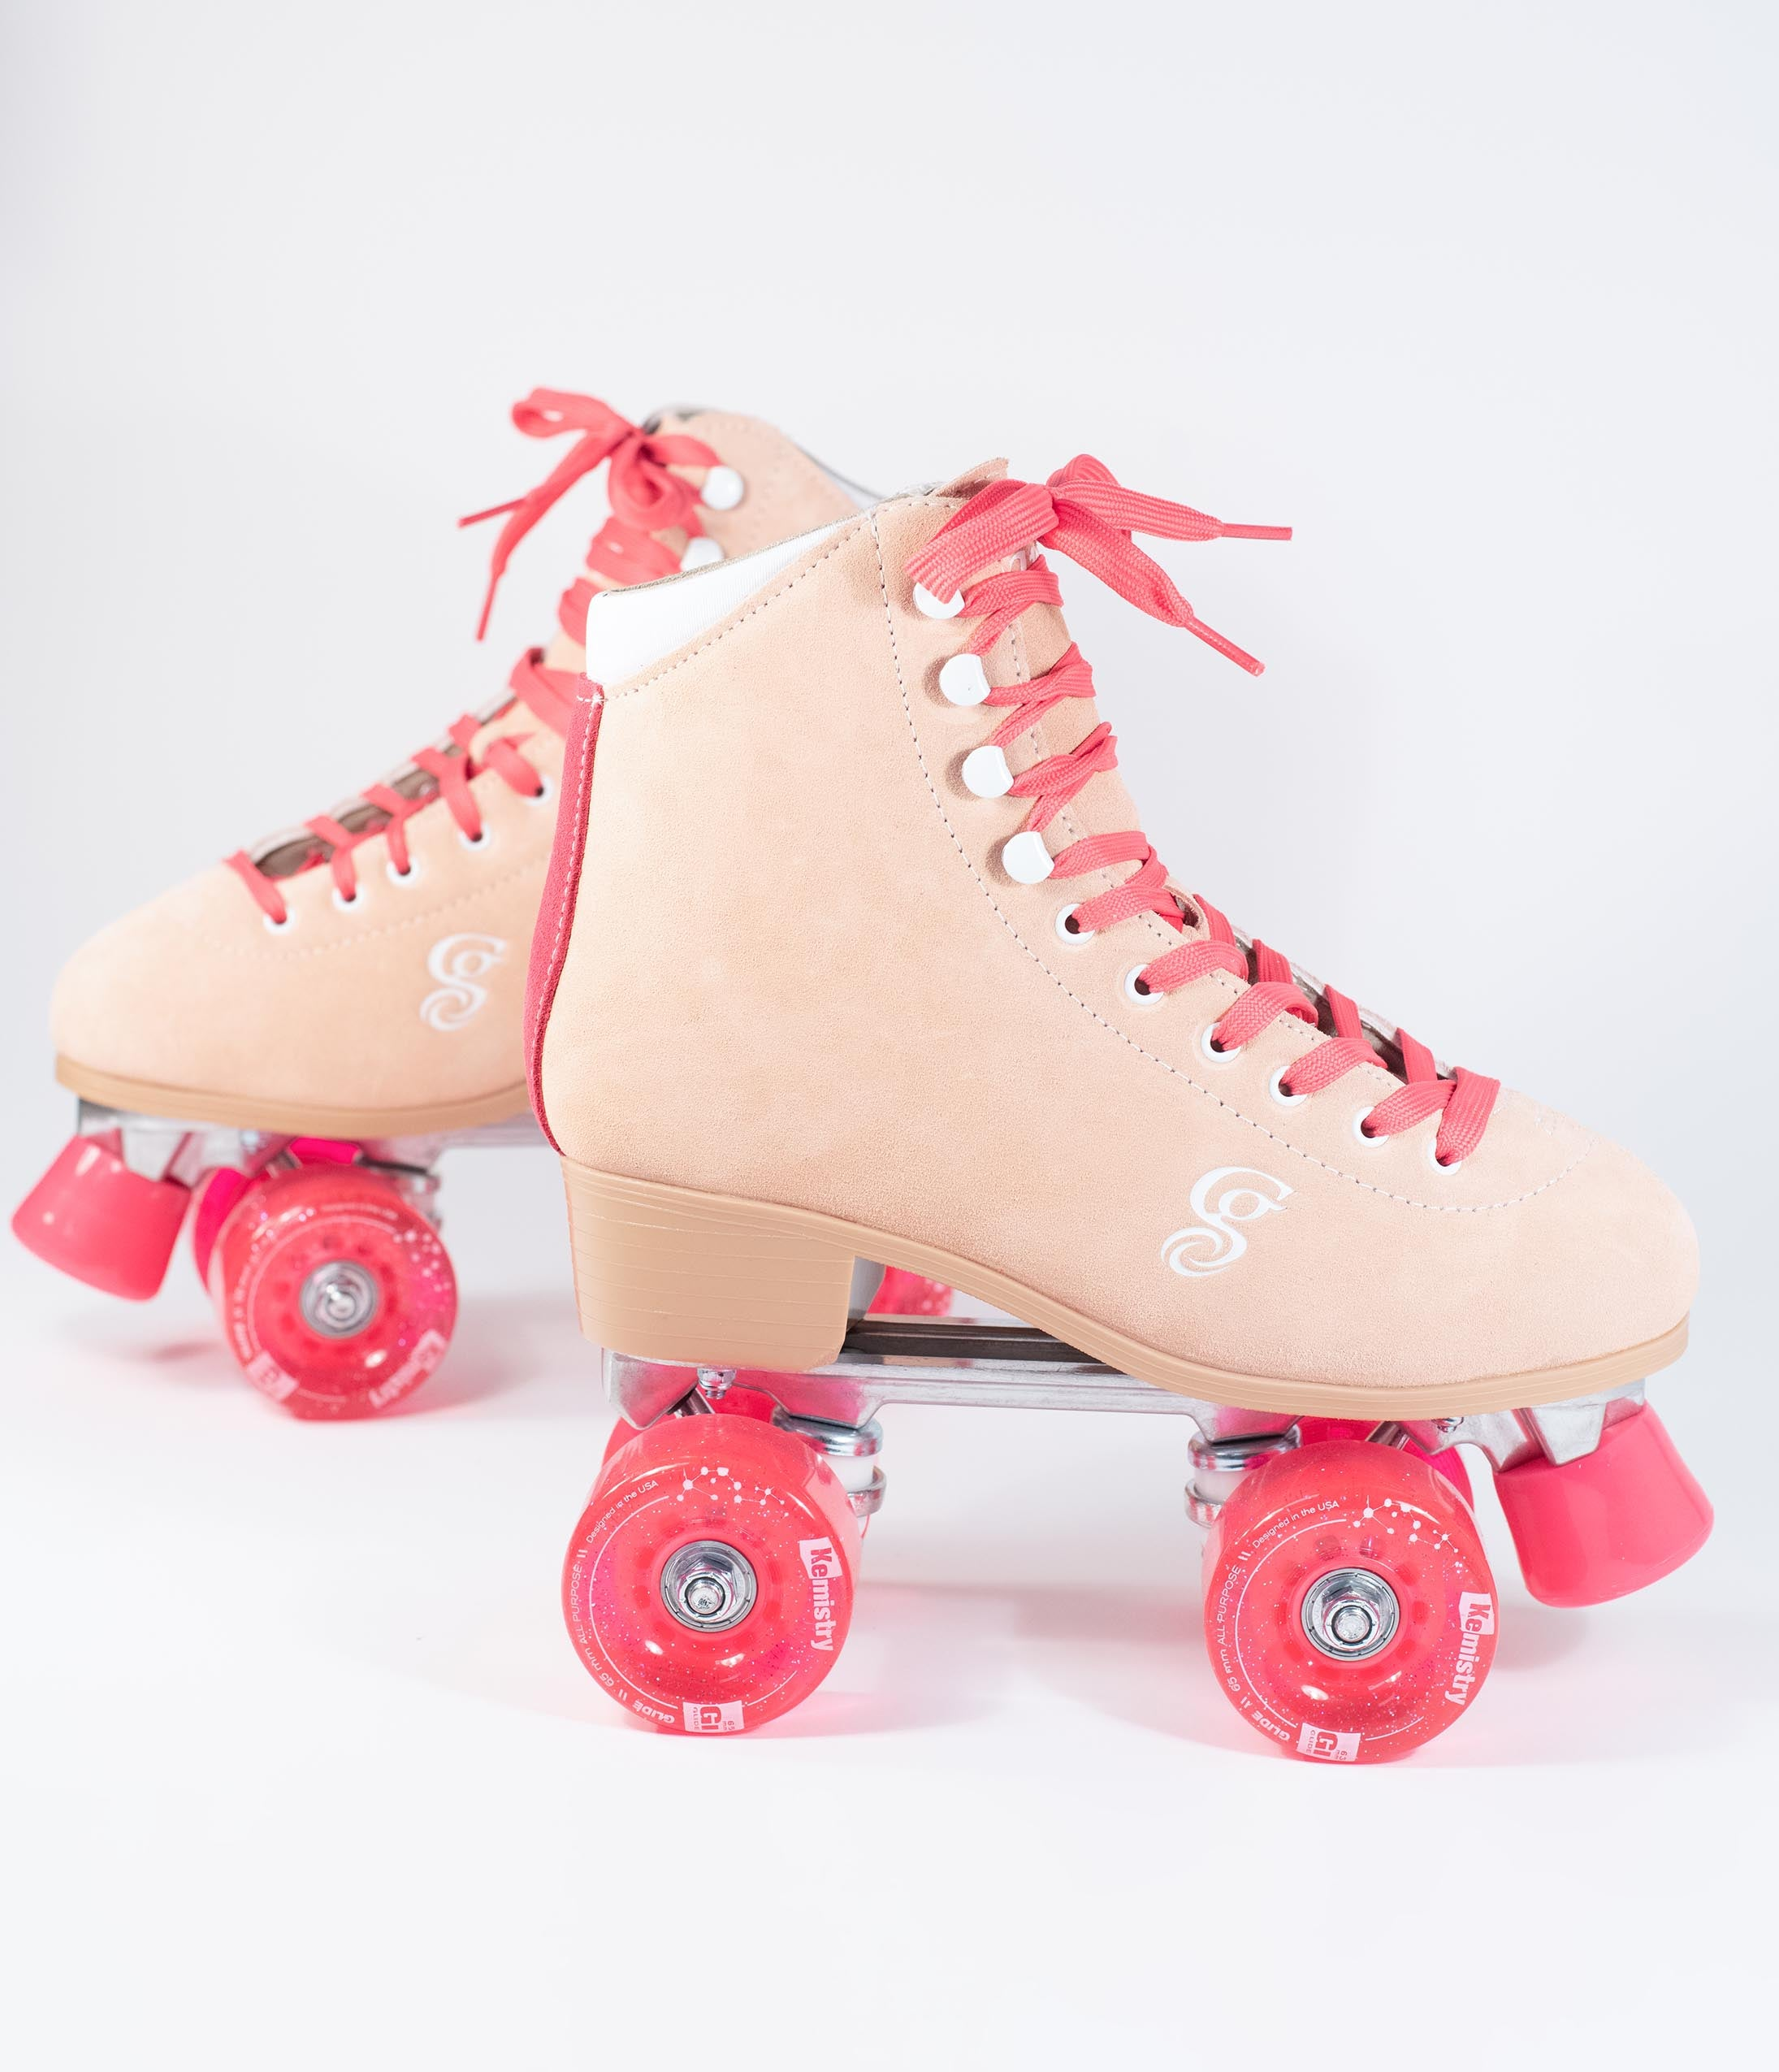 1980s Clothing, Fashion | 80s Style Clothes Peach Pink Suede Carlin Roller Skates $110.00 AT vintagedancer.com